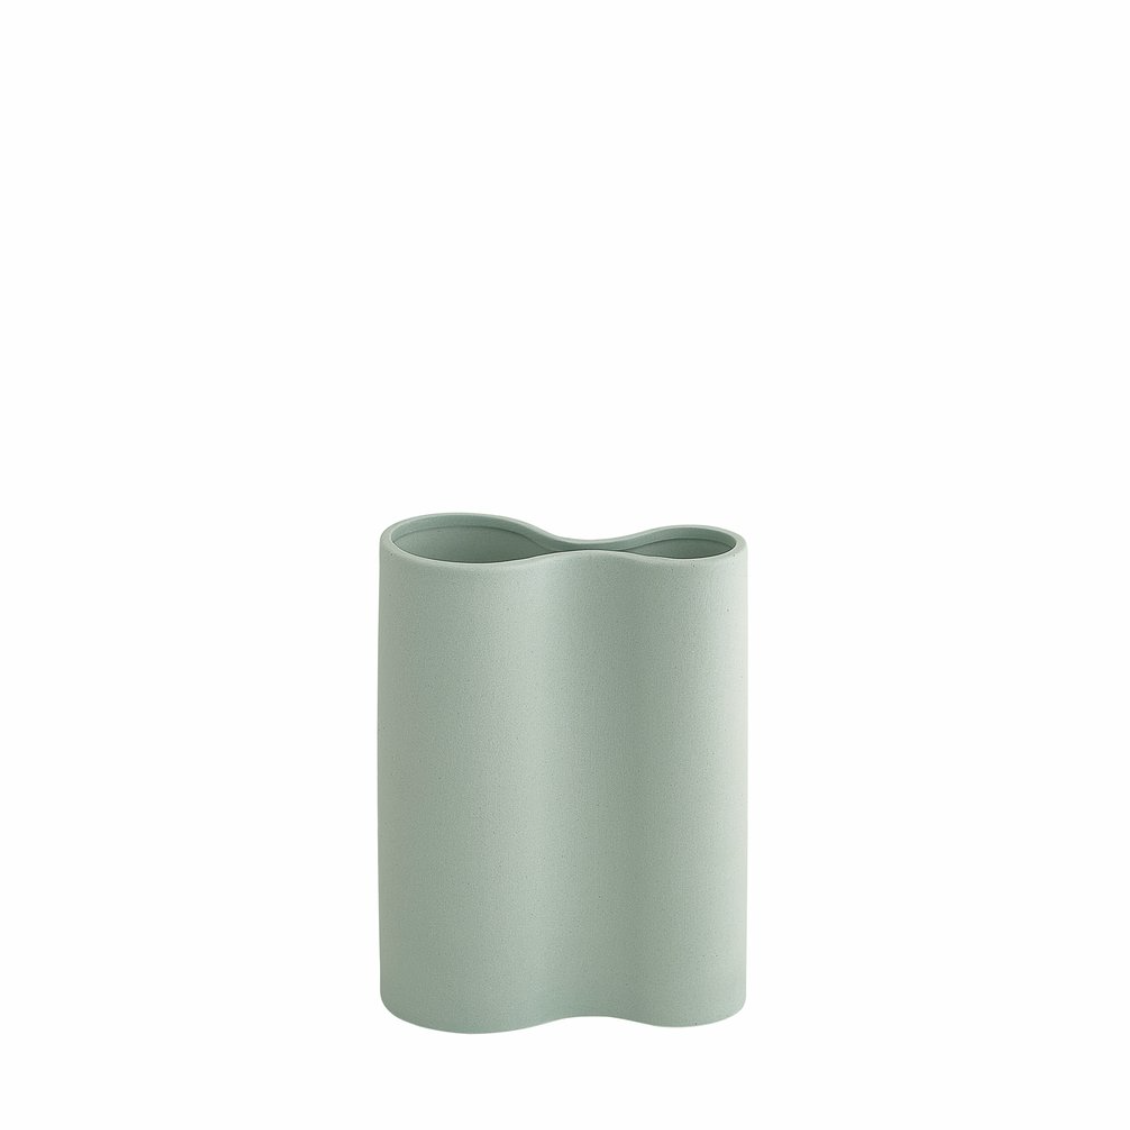 Infinity Smooth Vase - Small - Blue